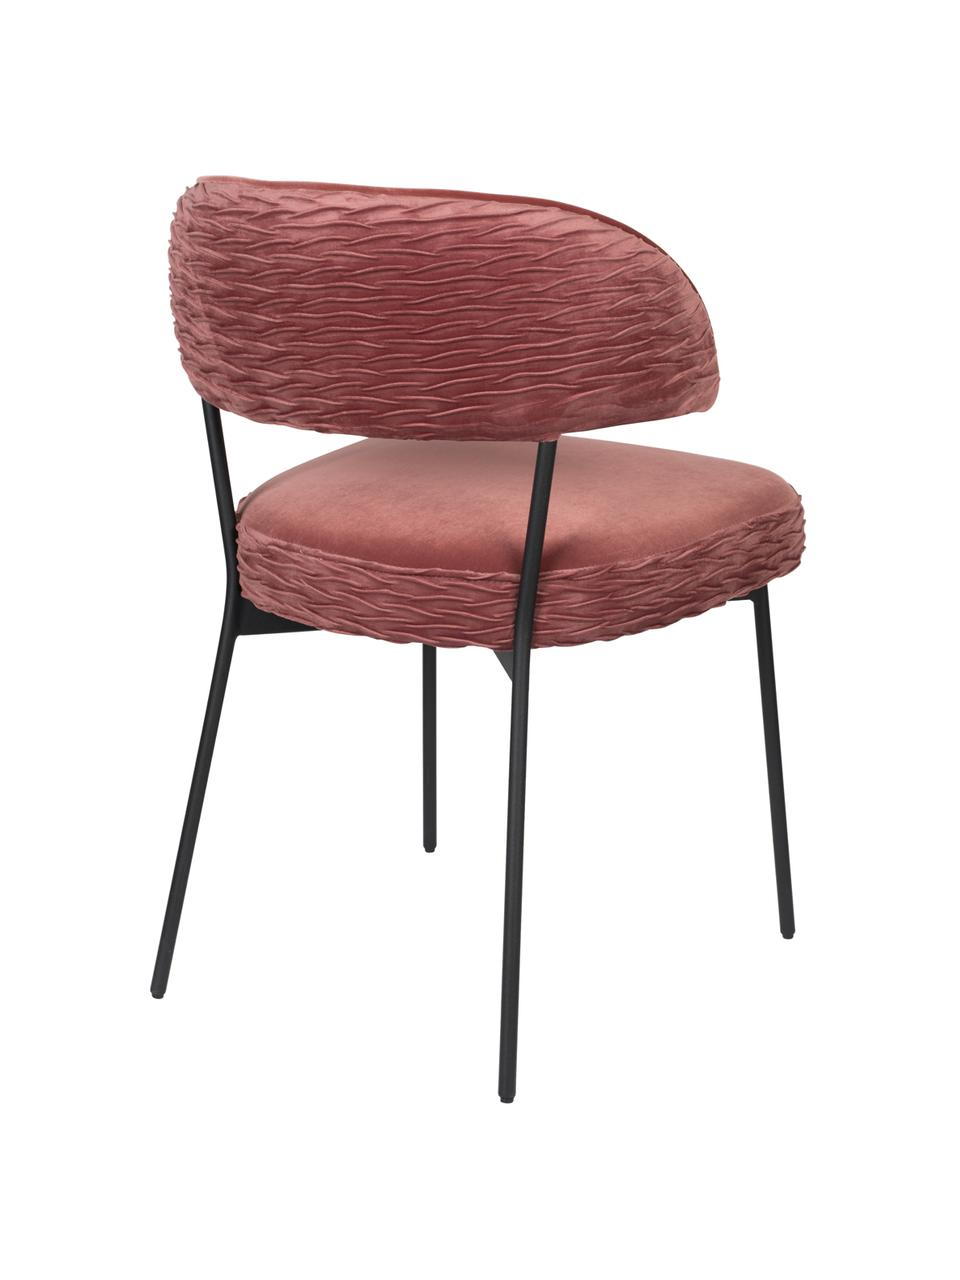 Chaise velours rembourré The Winner Takes It All, Rose vif